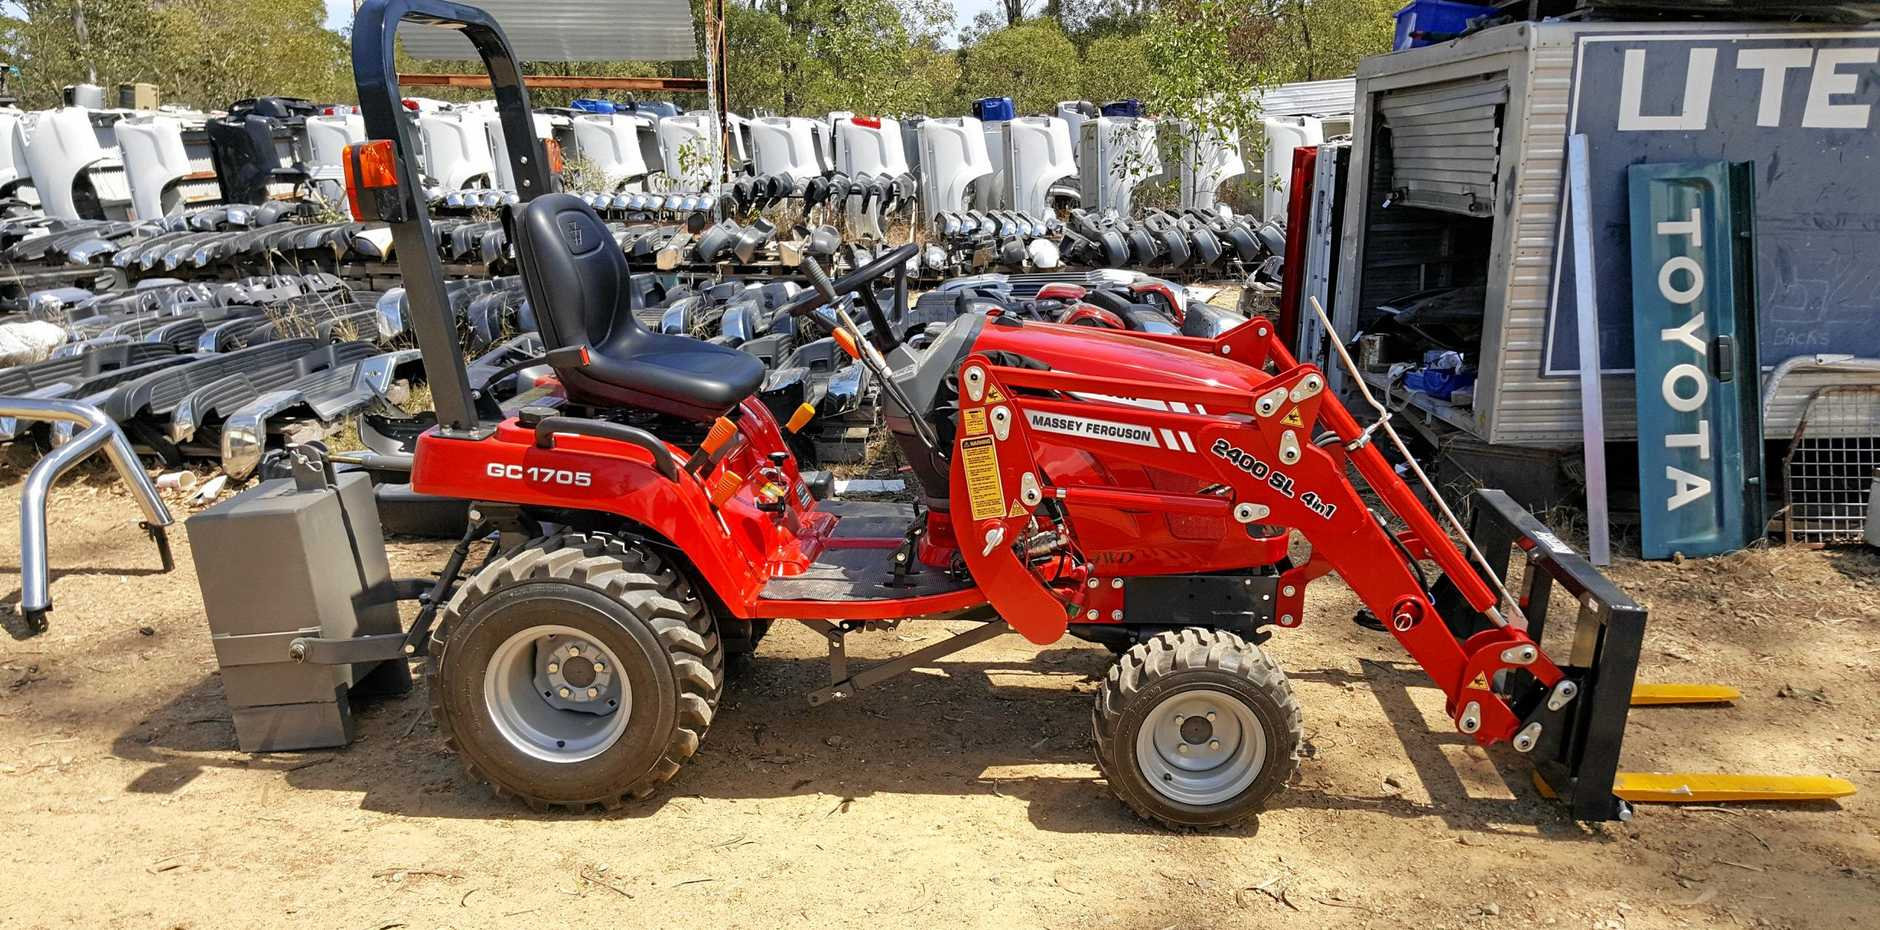 Police are seeking assistance to identify a person that stole a tractor from a property on Greenwood Village Rd in Redbank Plains.